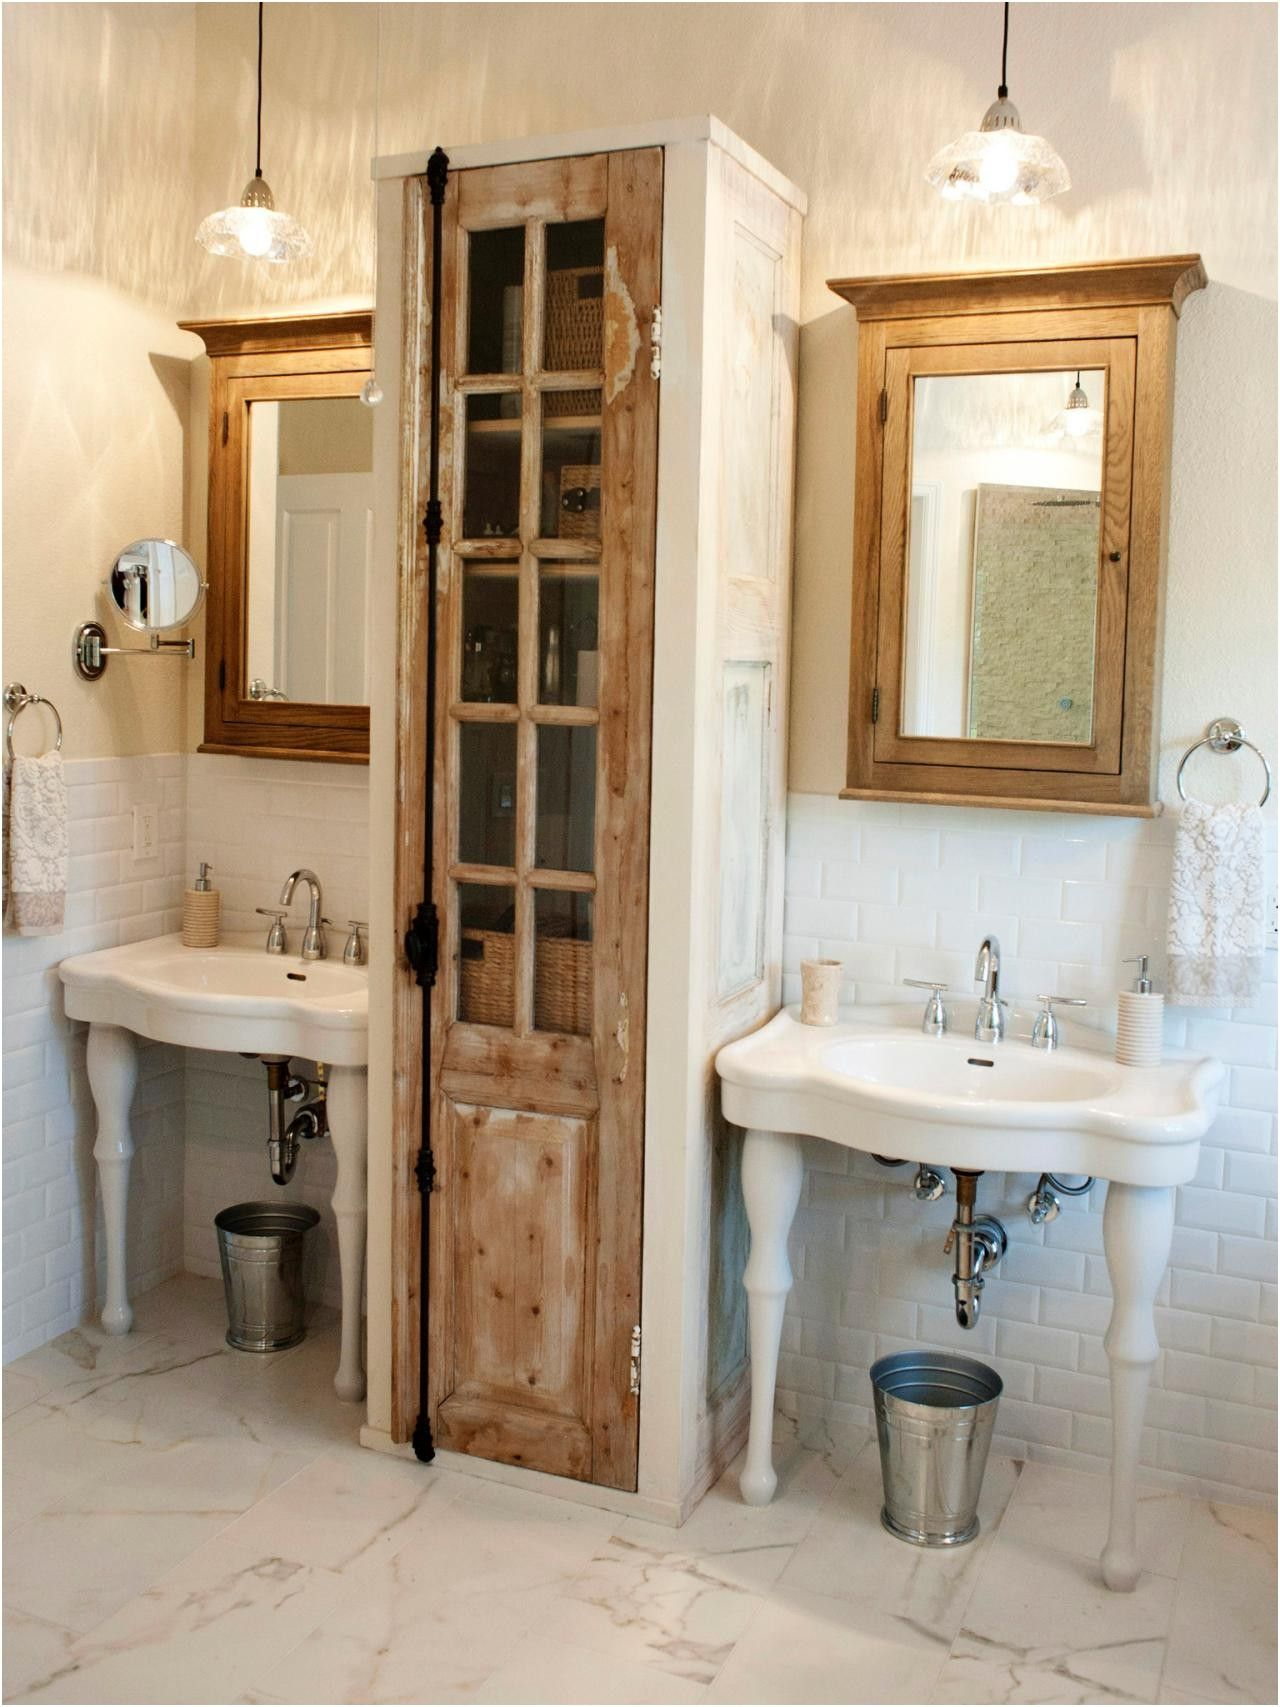 bathroom cabinets from vintage bathroom cabinets for 20215